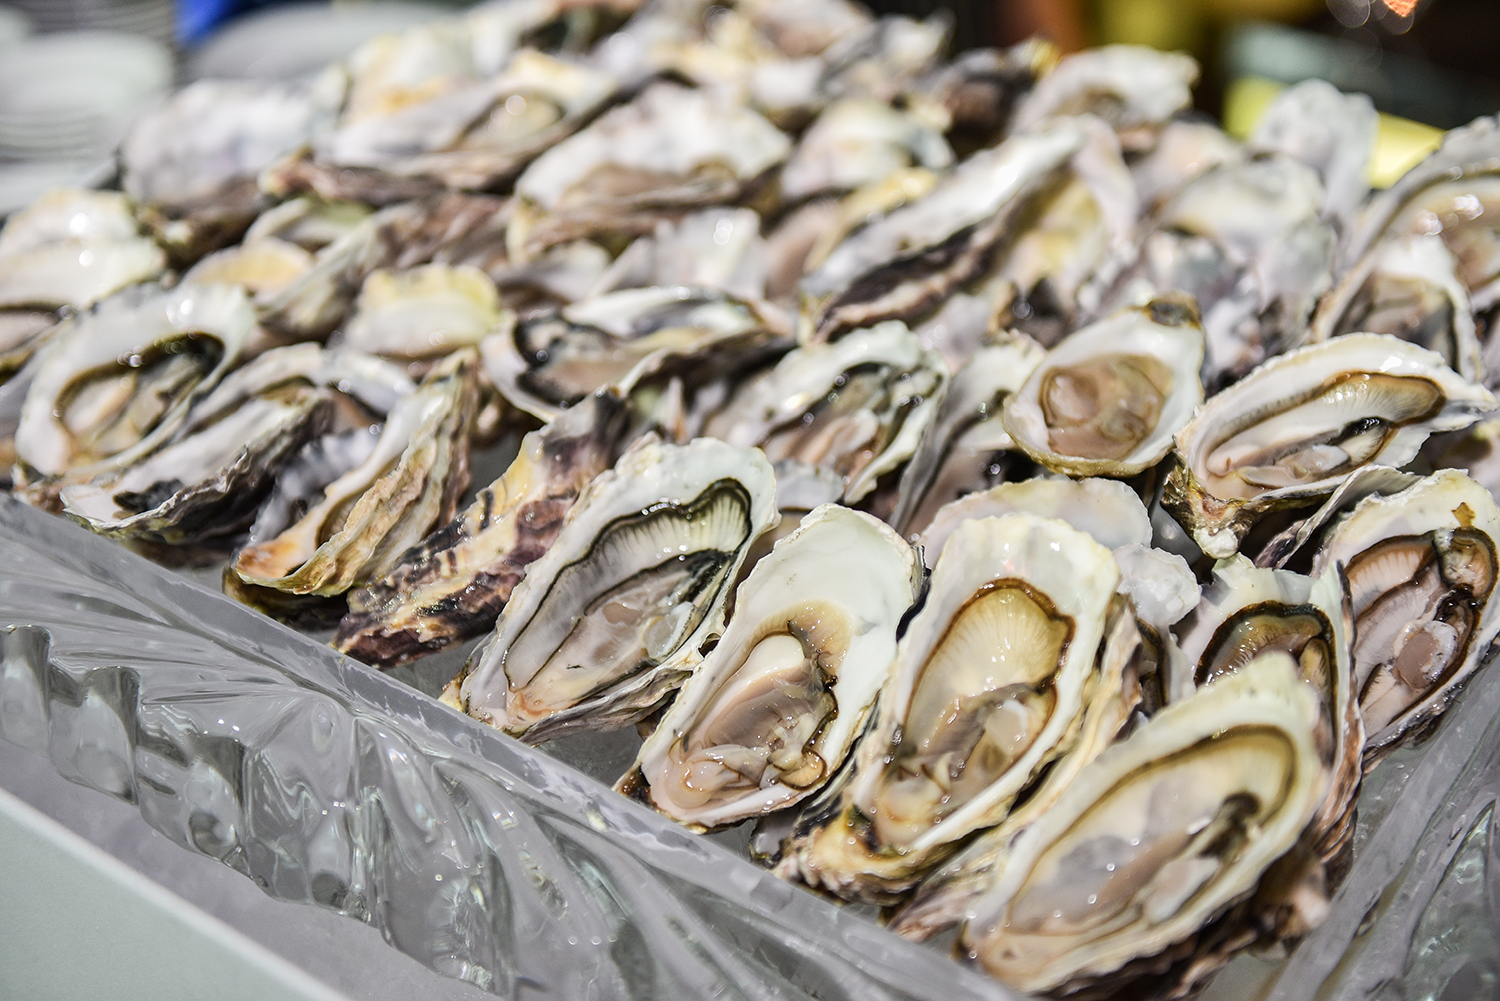 Oysters in a Half Shell